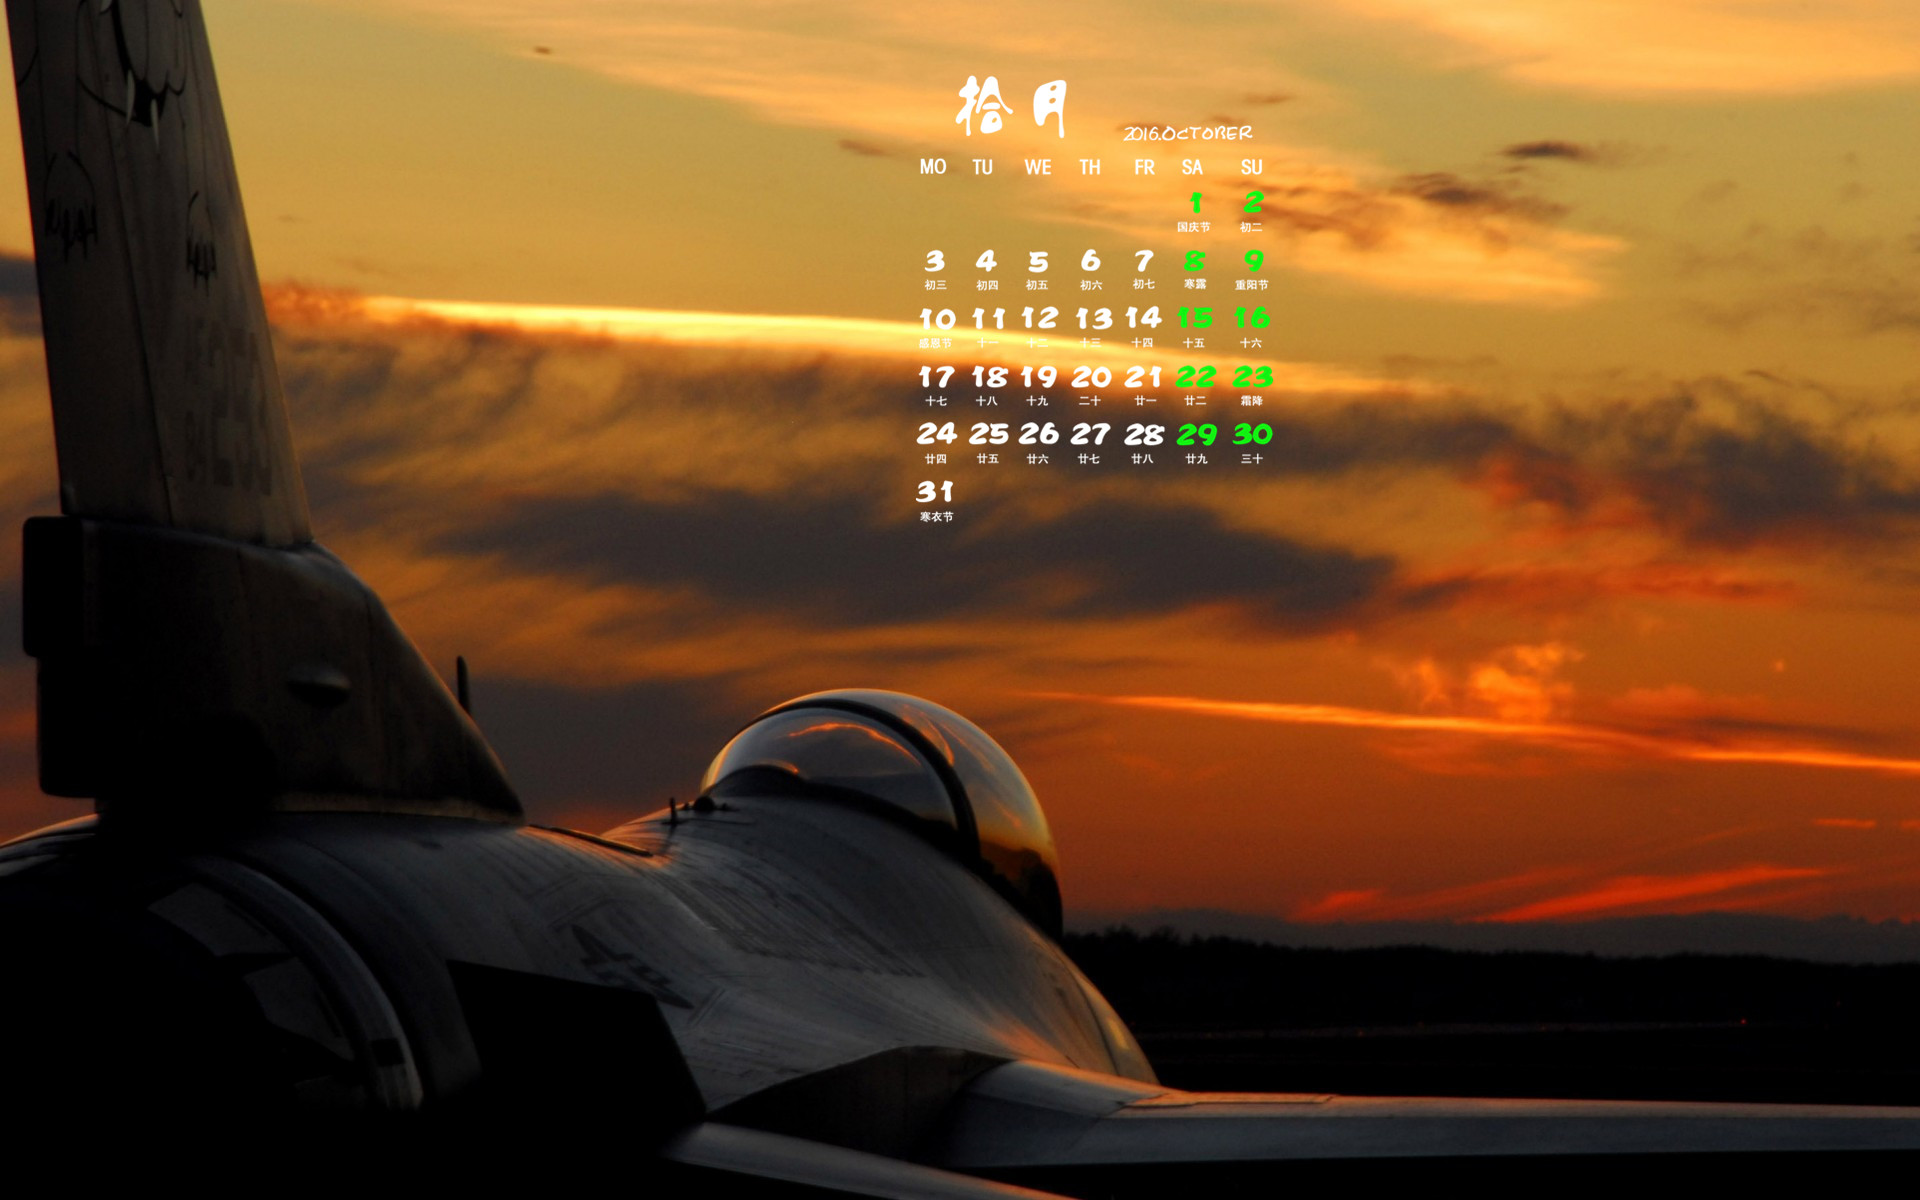 Fighter Plane Wallpapers  Full HD wallpaper search